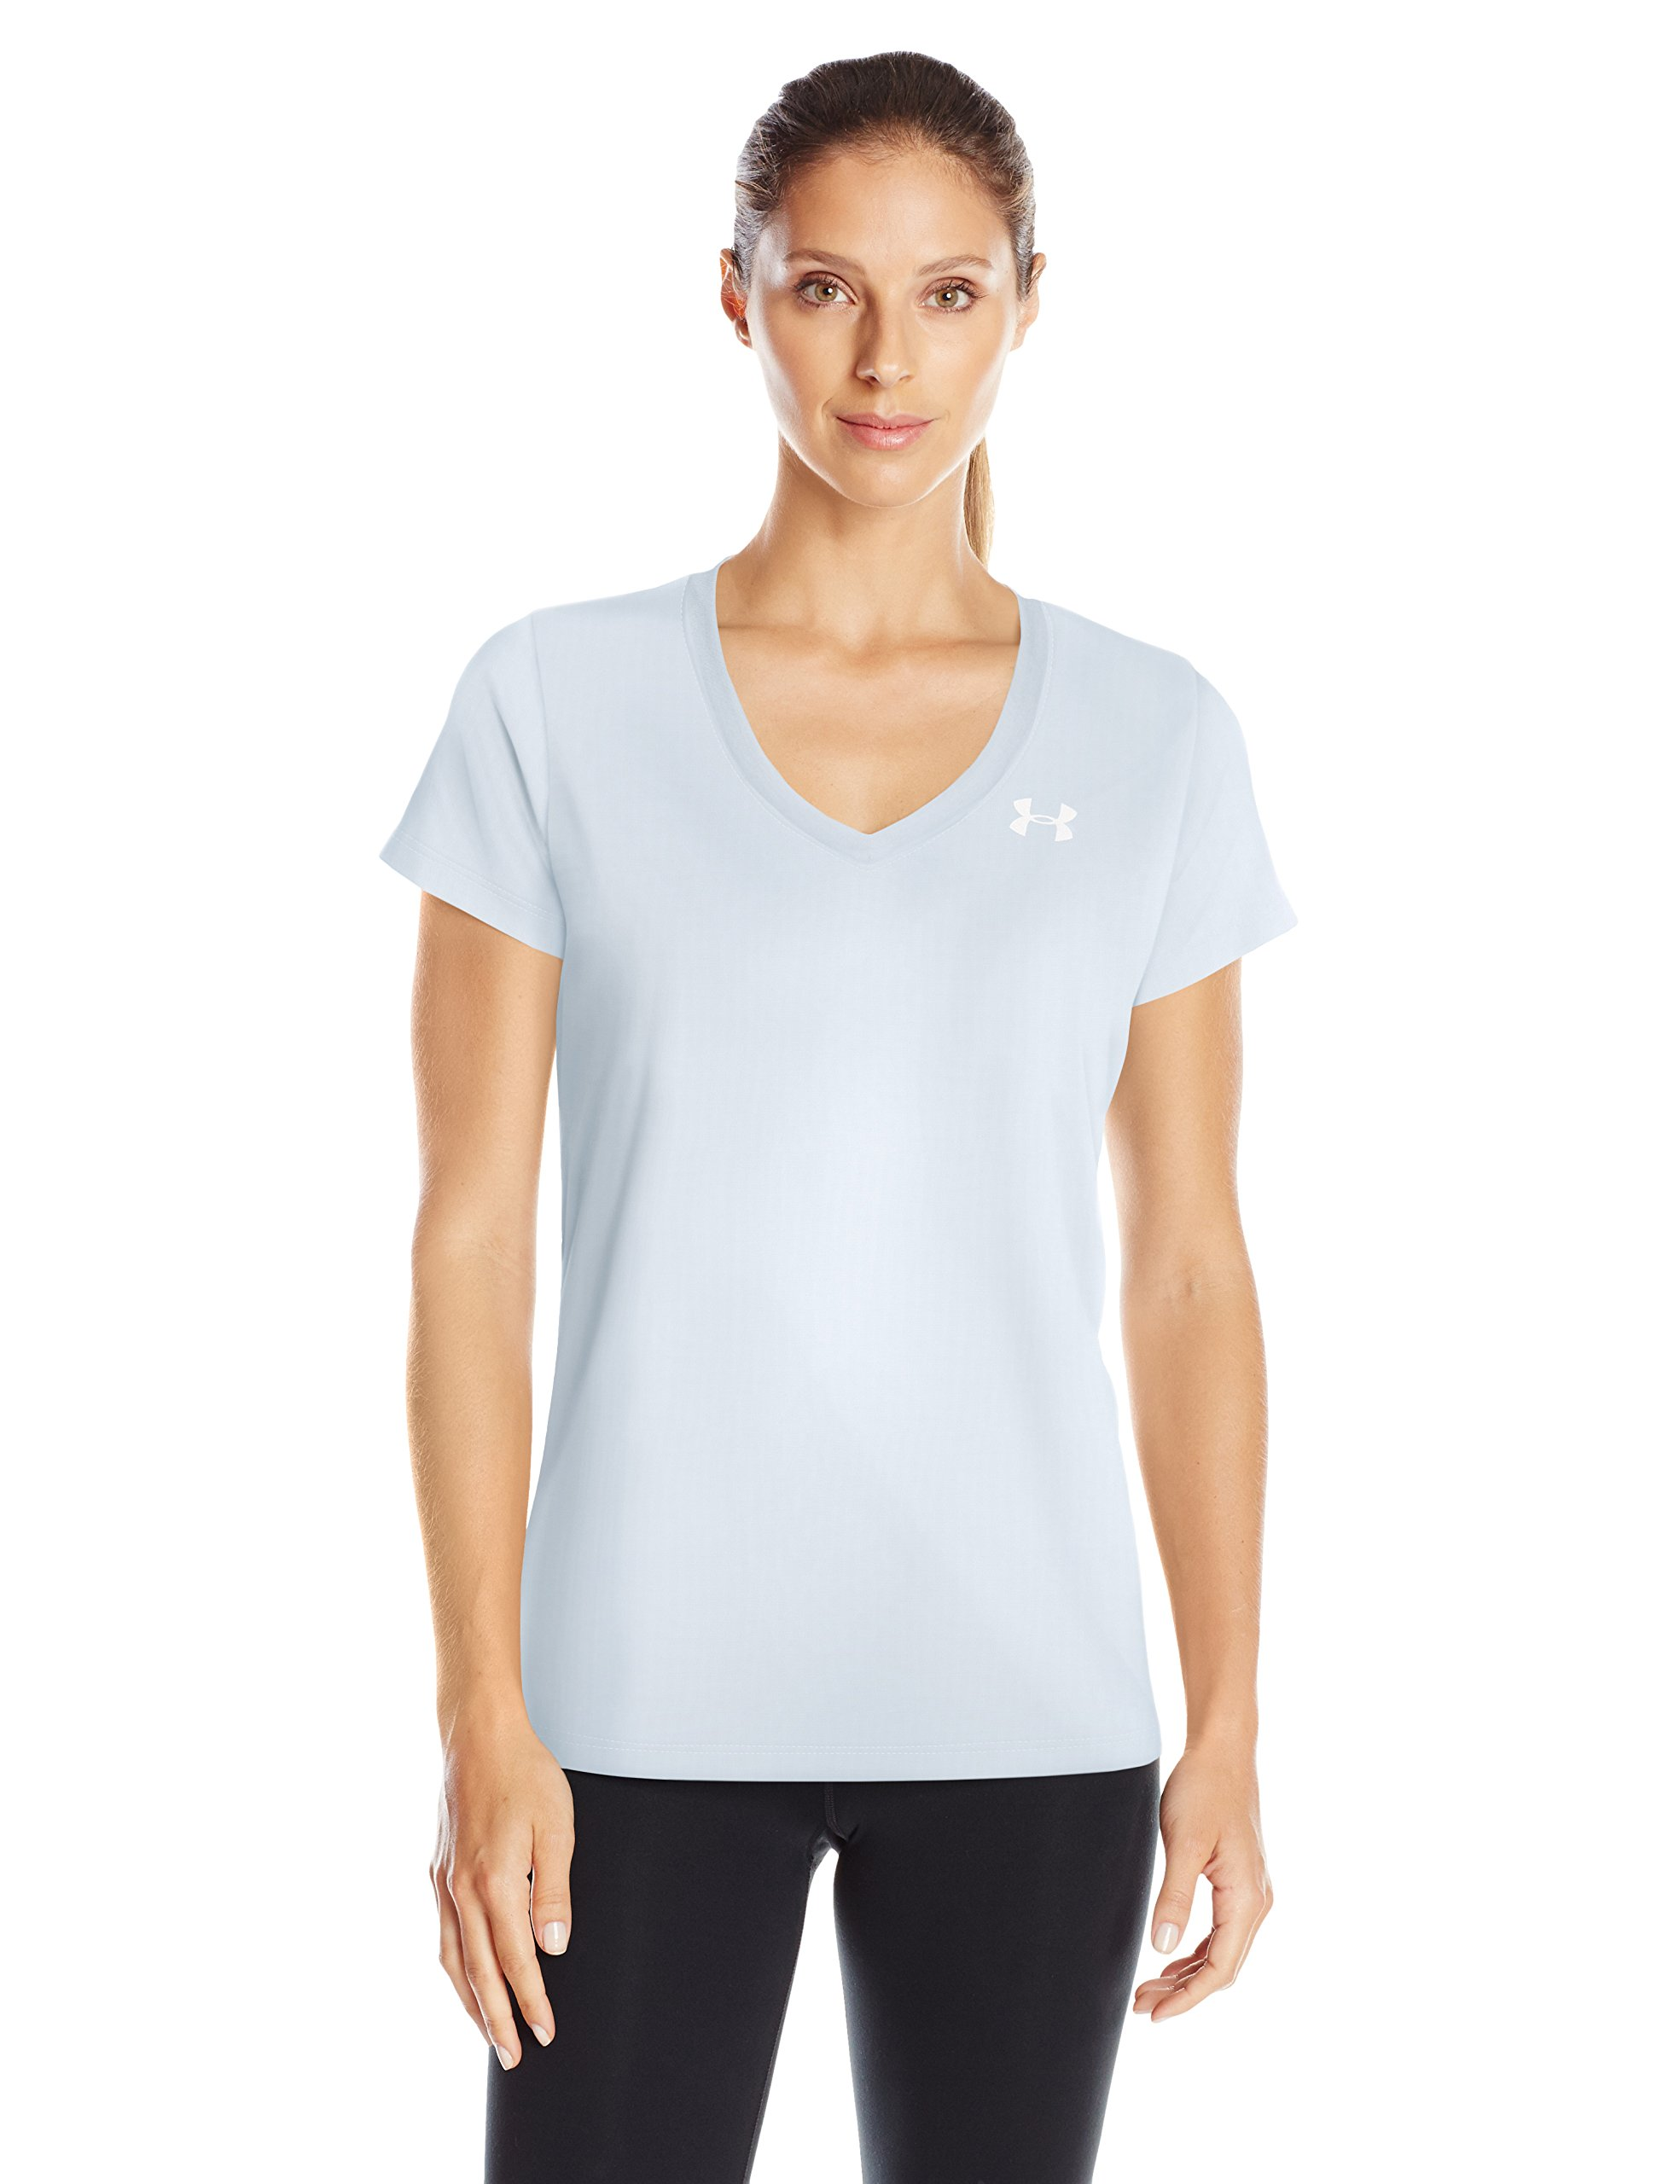 Under Armour Women's Tech Twist V-Neck, Halogen Blue (441)/Metallic Silver, X-Small